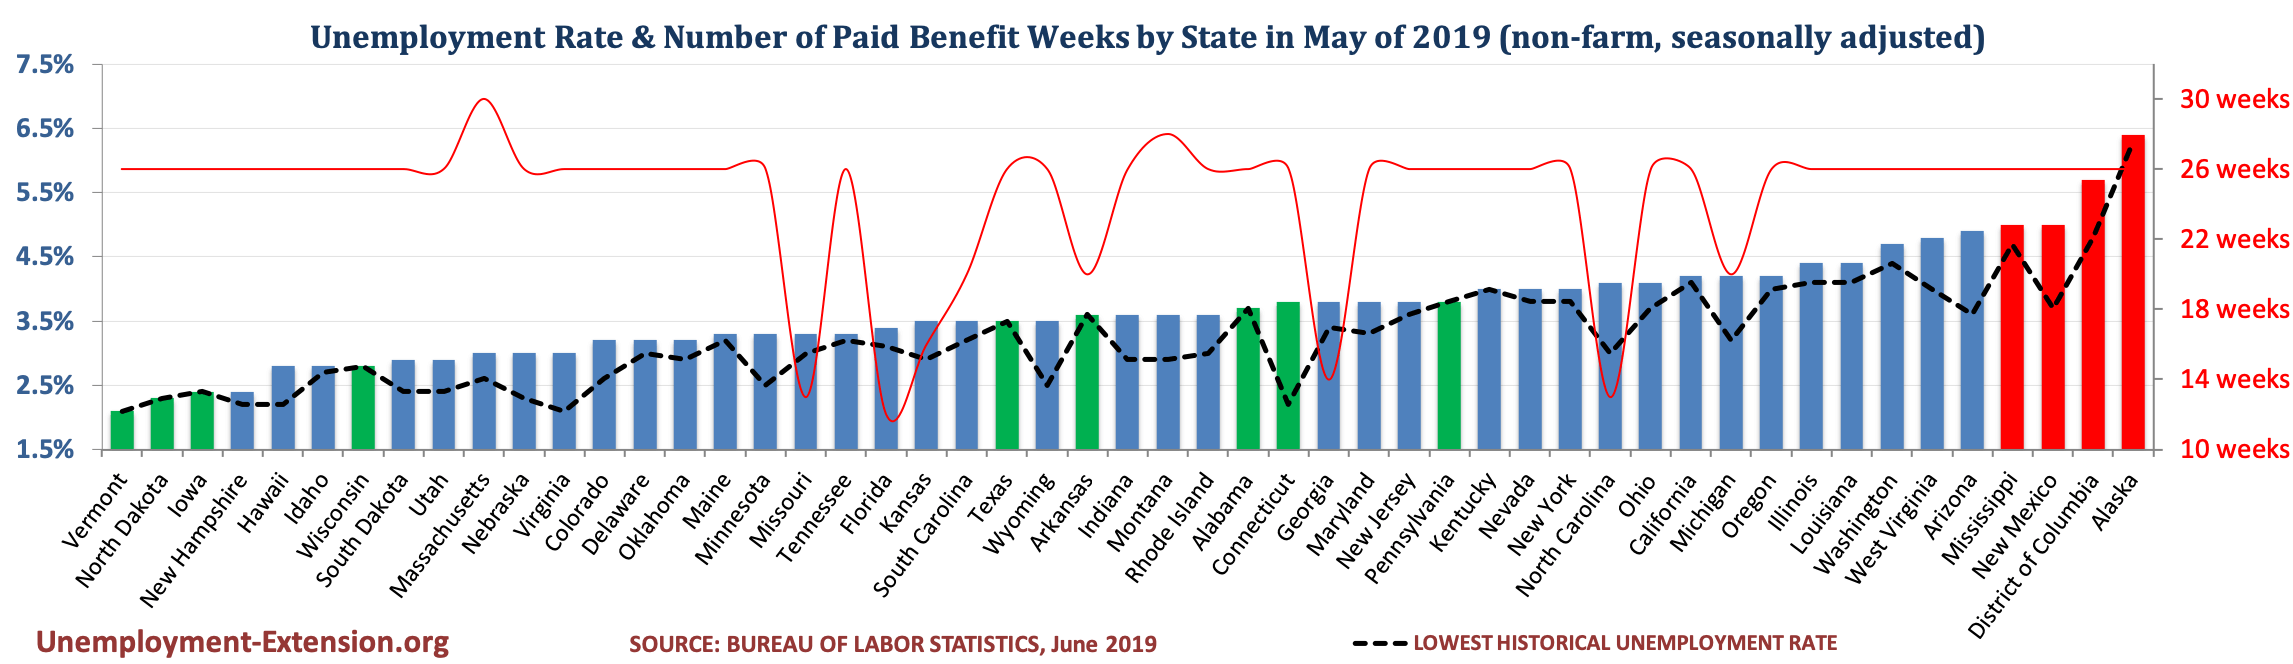 Unemployment Rate and Number of Paid Unemployment Benefit weeks by State (non-farm, seasonally adjusted) in May of 2019